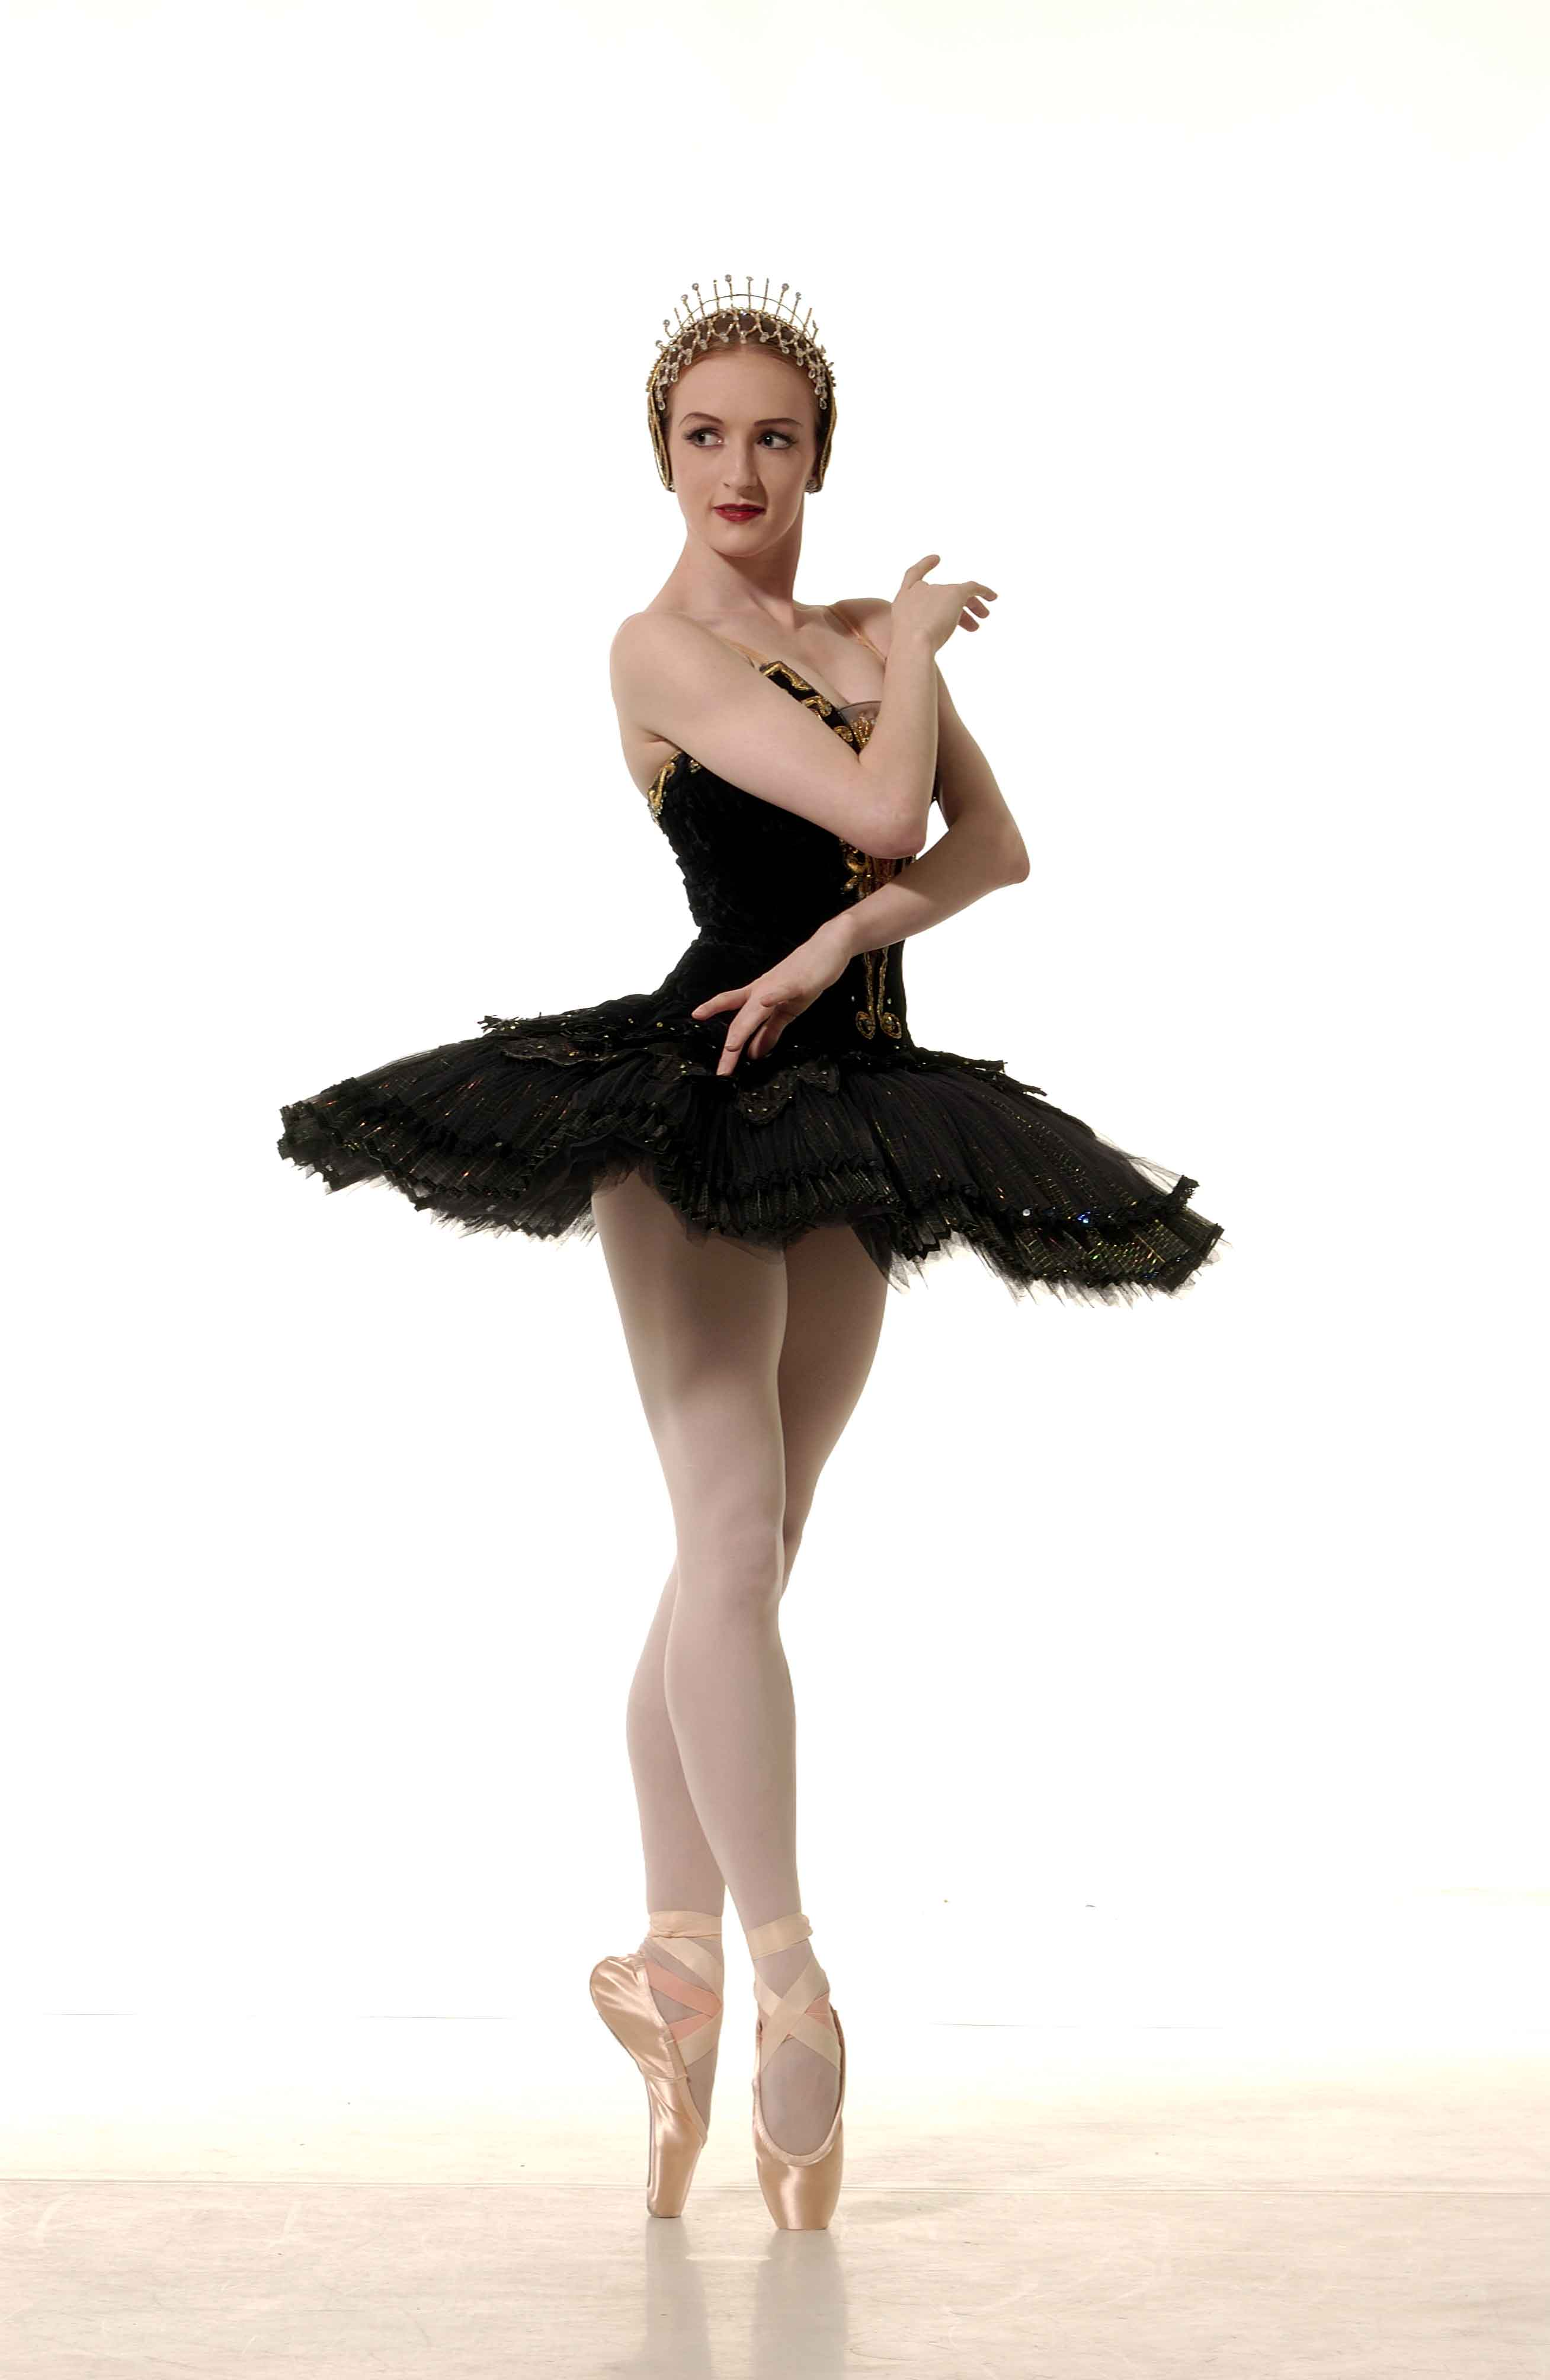 Gillian as the Black Swan